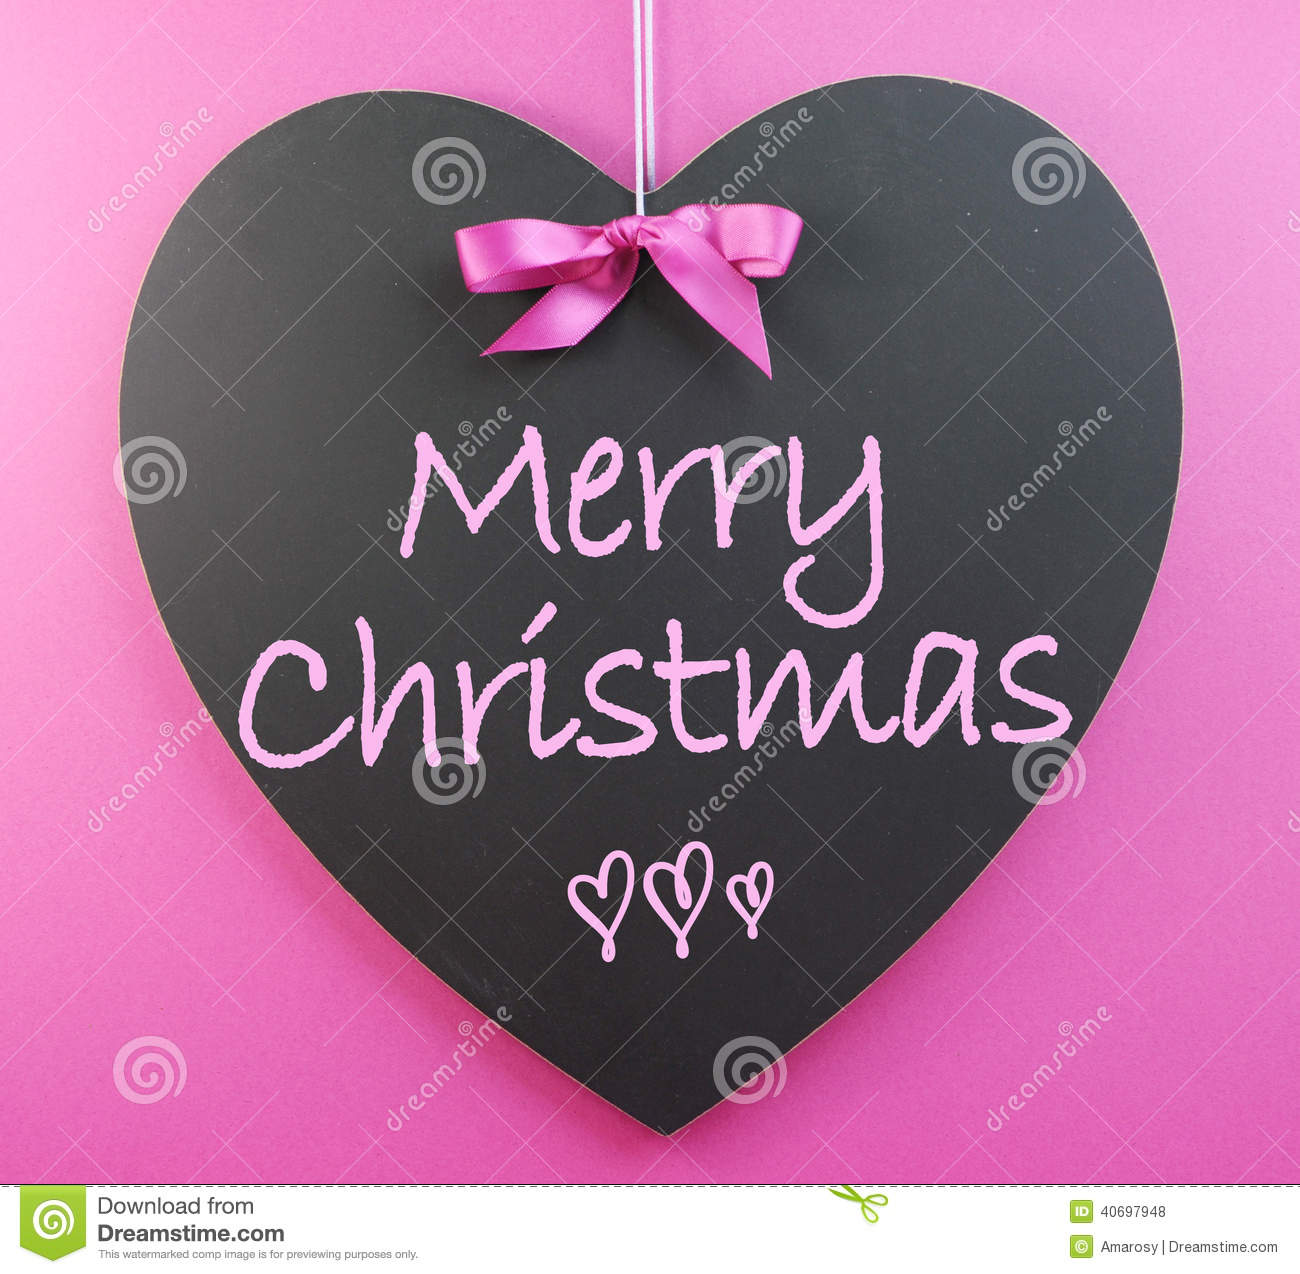 Pink Theme Merry Christmas Message Stock Photo - Image: 40697948